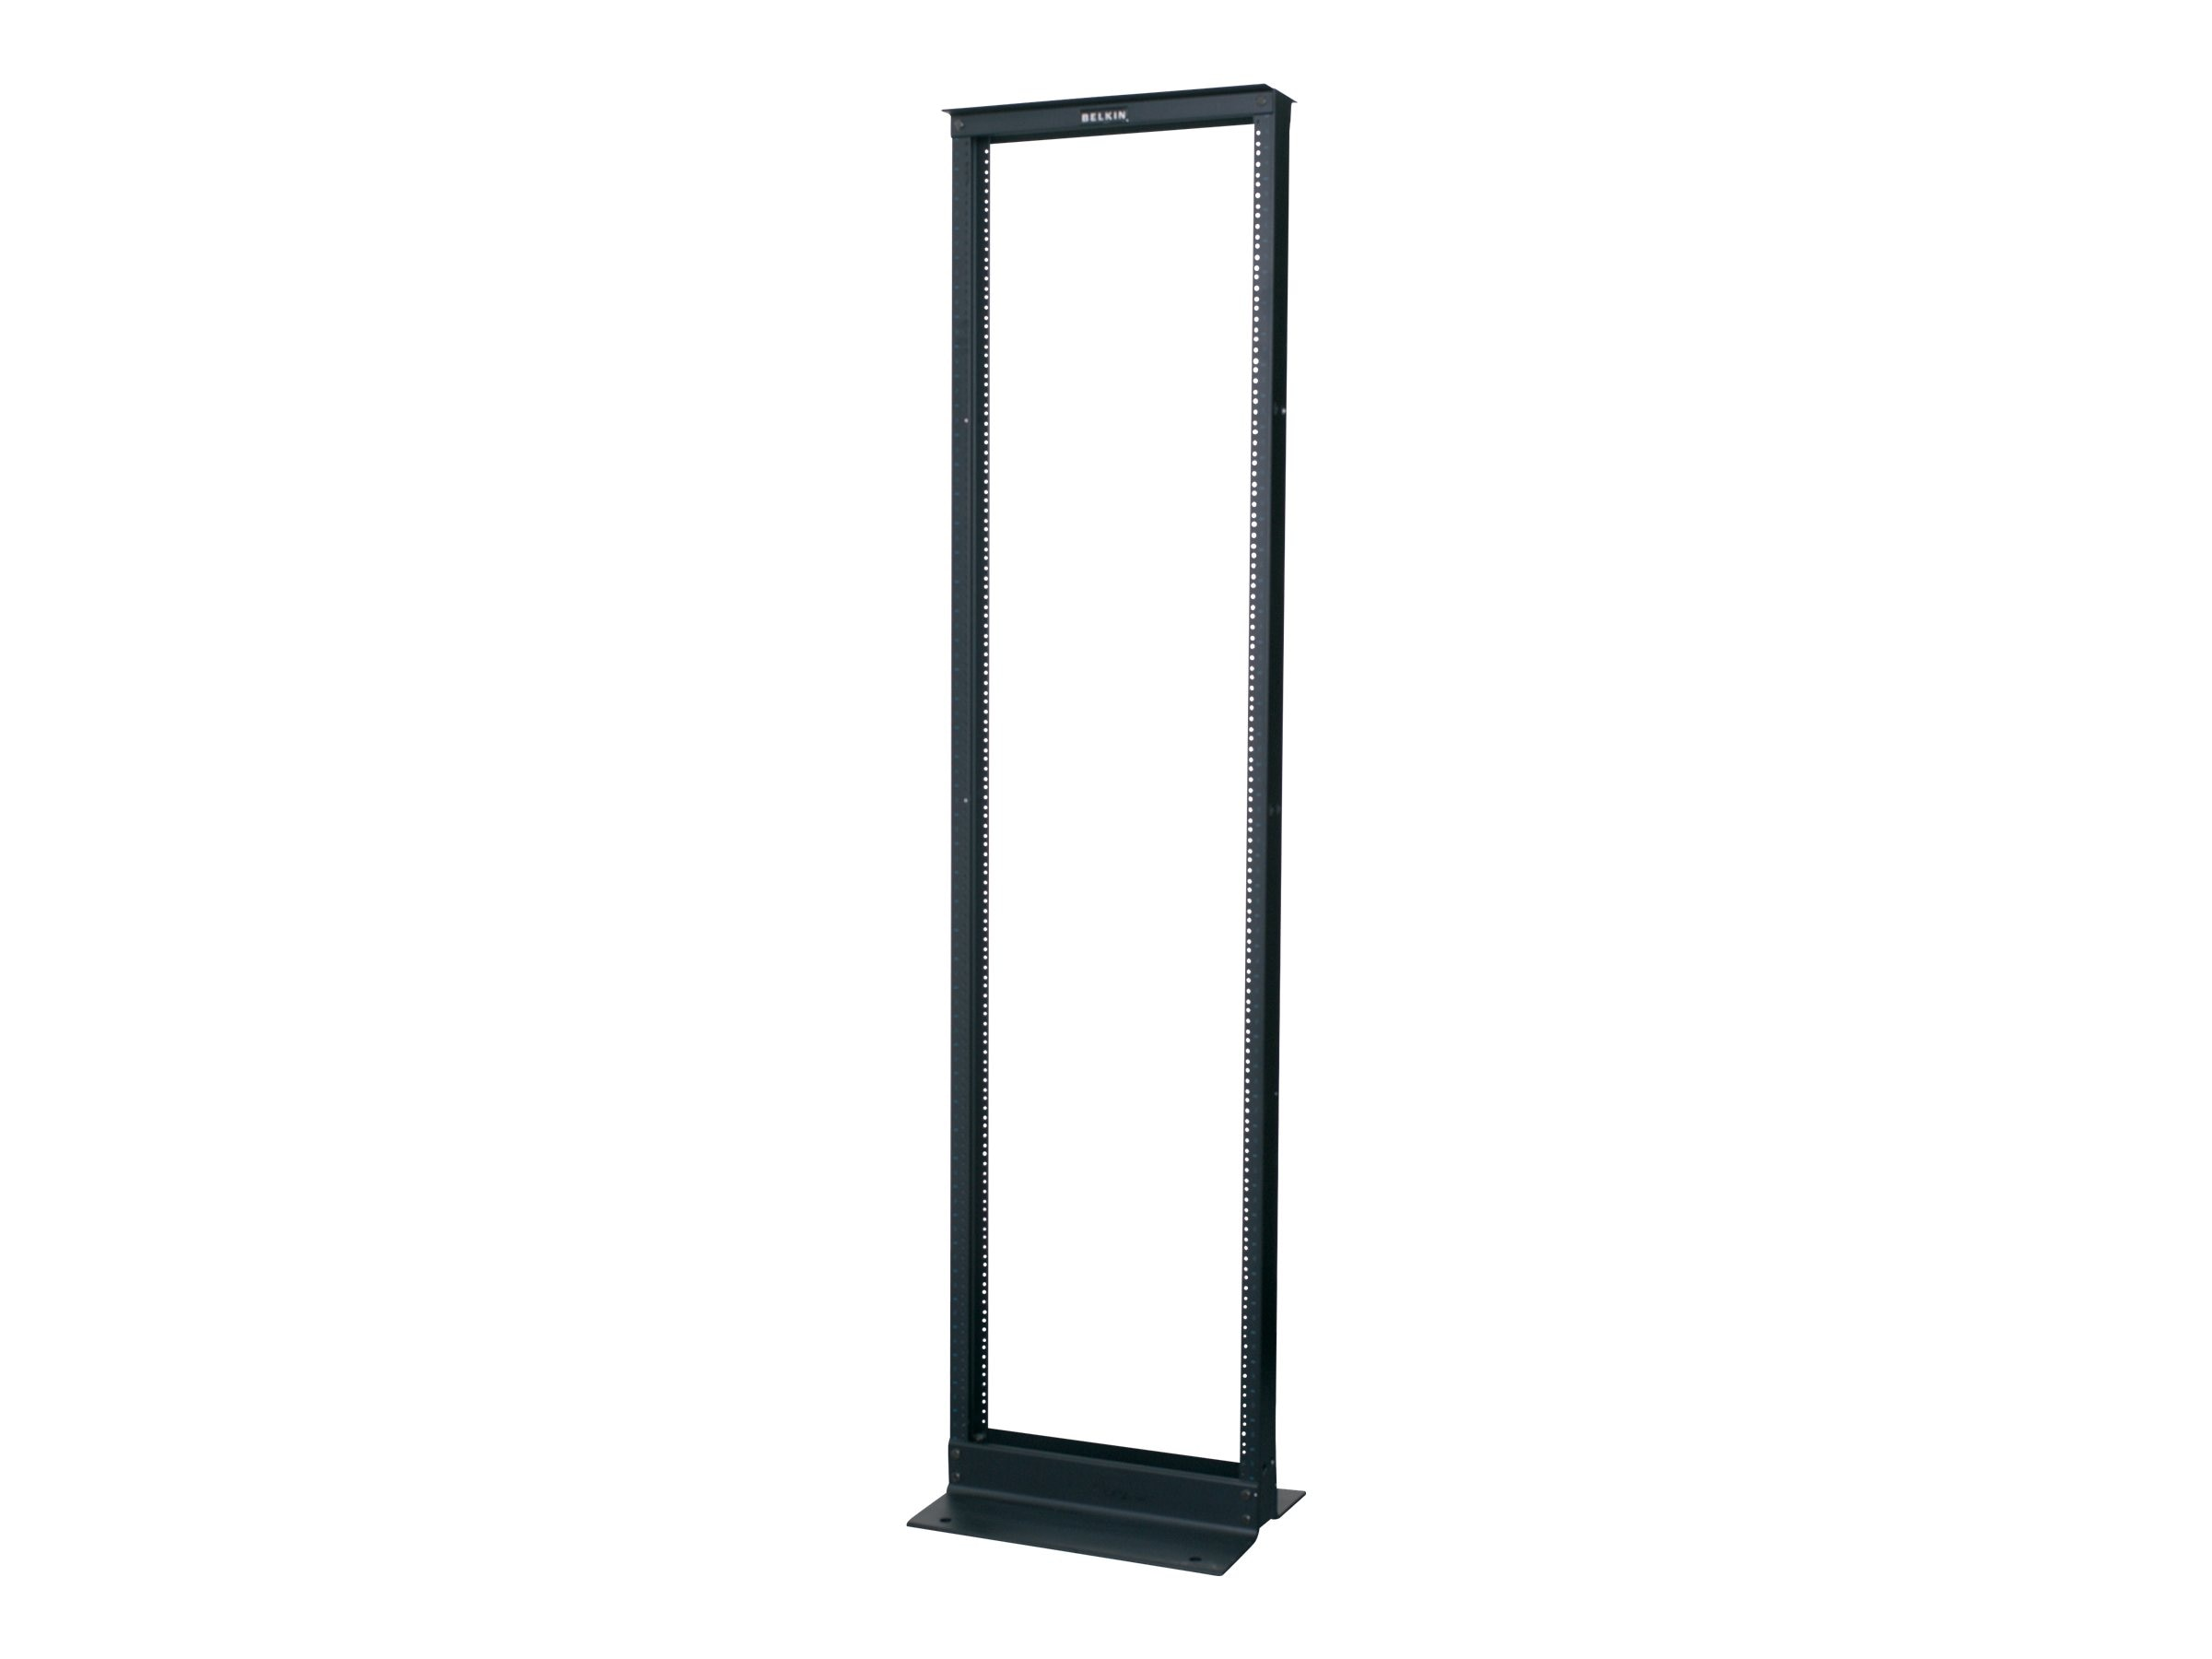 Belkin 2-Post Rack 42U 19w x 7ft. High, RK2000